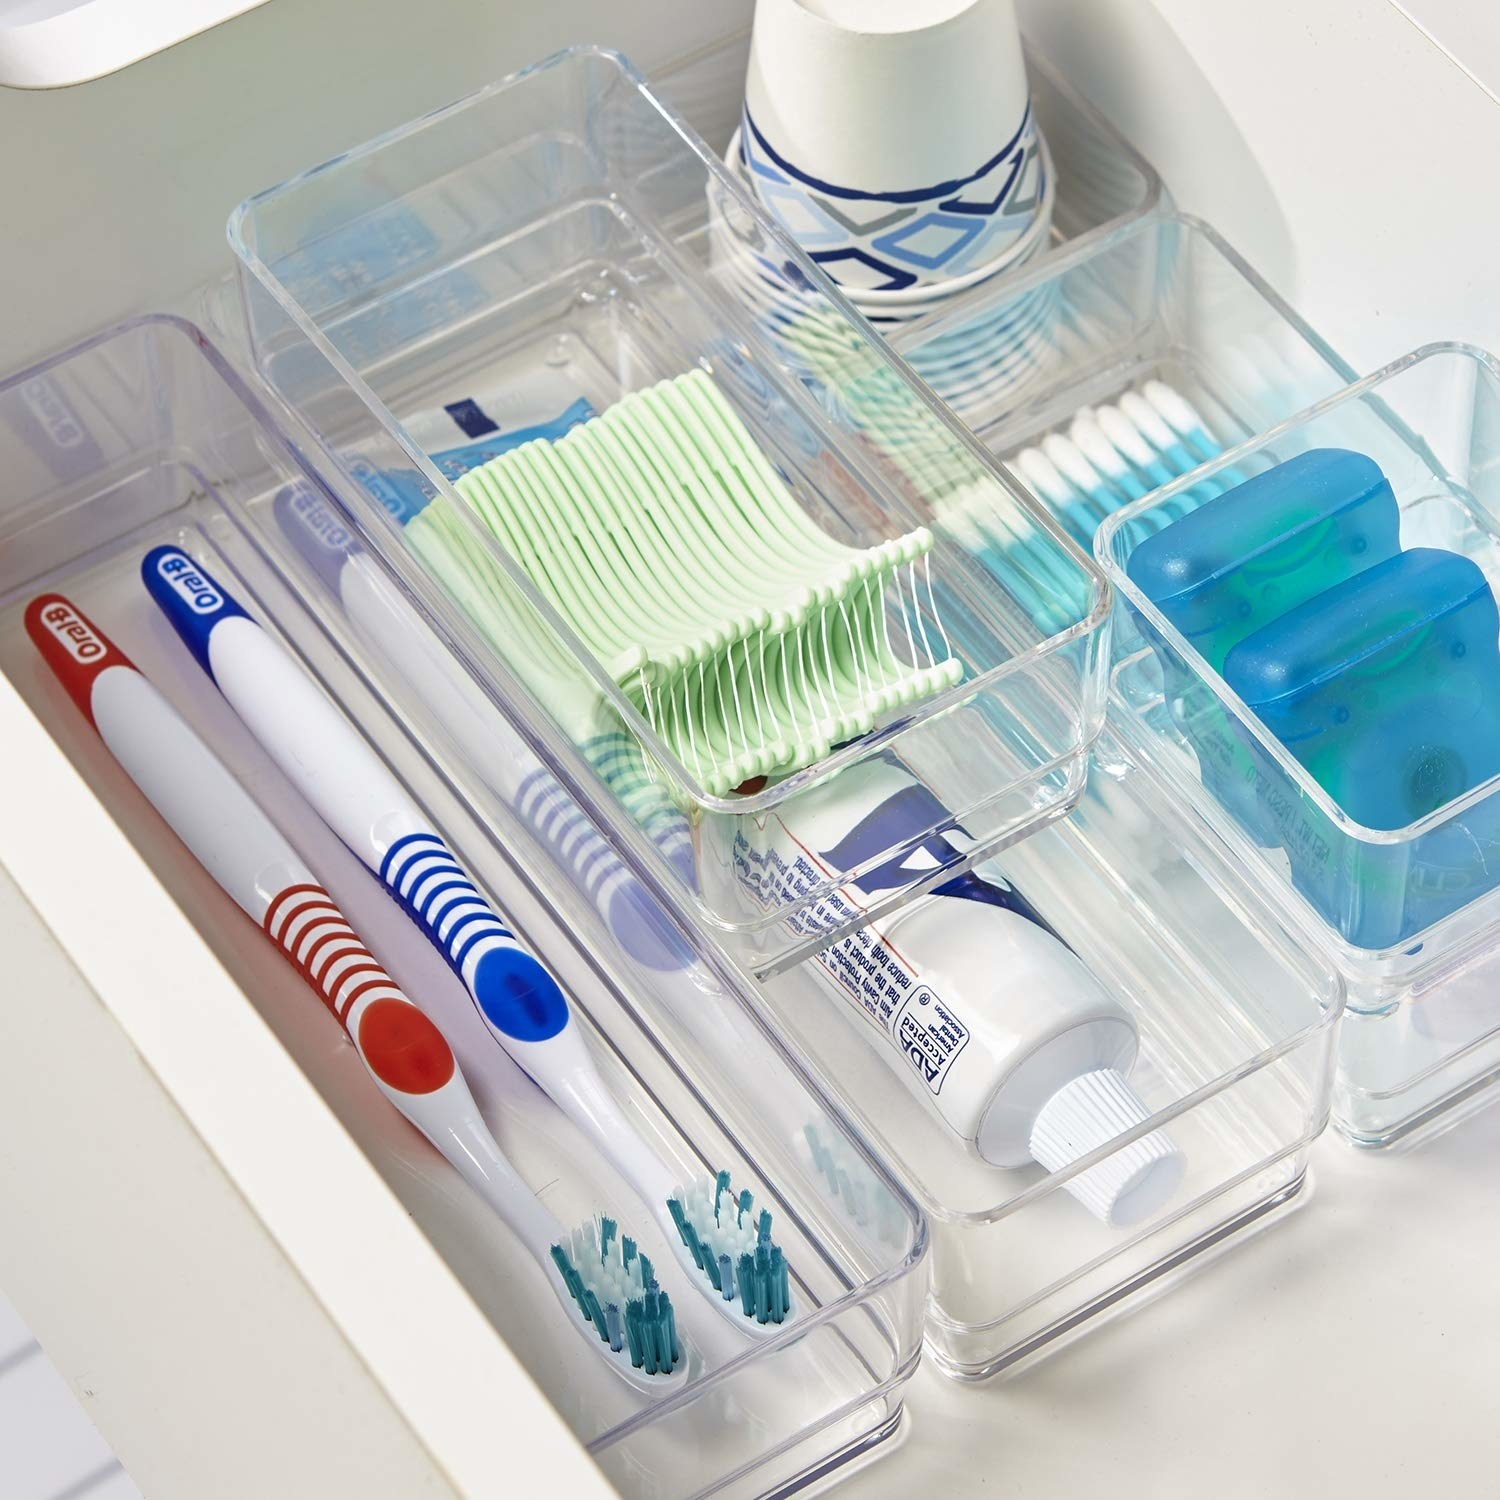 plastic drawer organizers with toothpaste, toothbrushes, and other toiletries in them